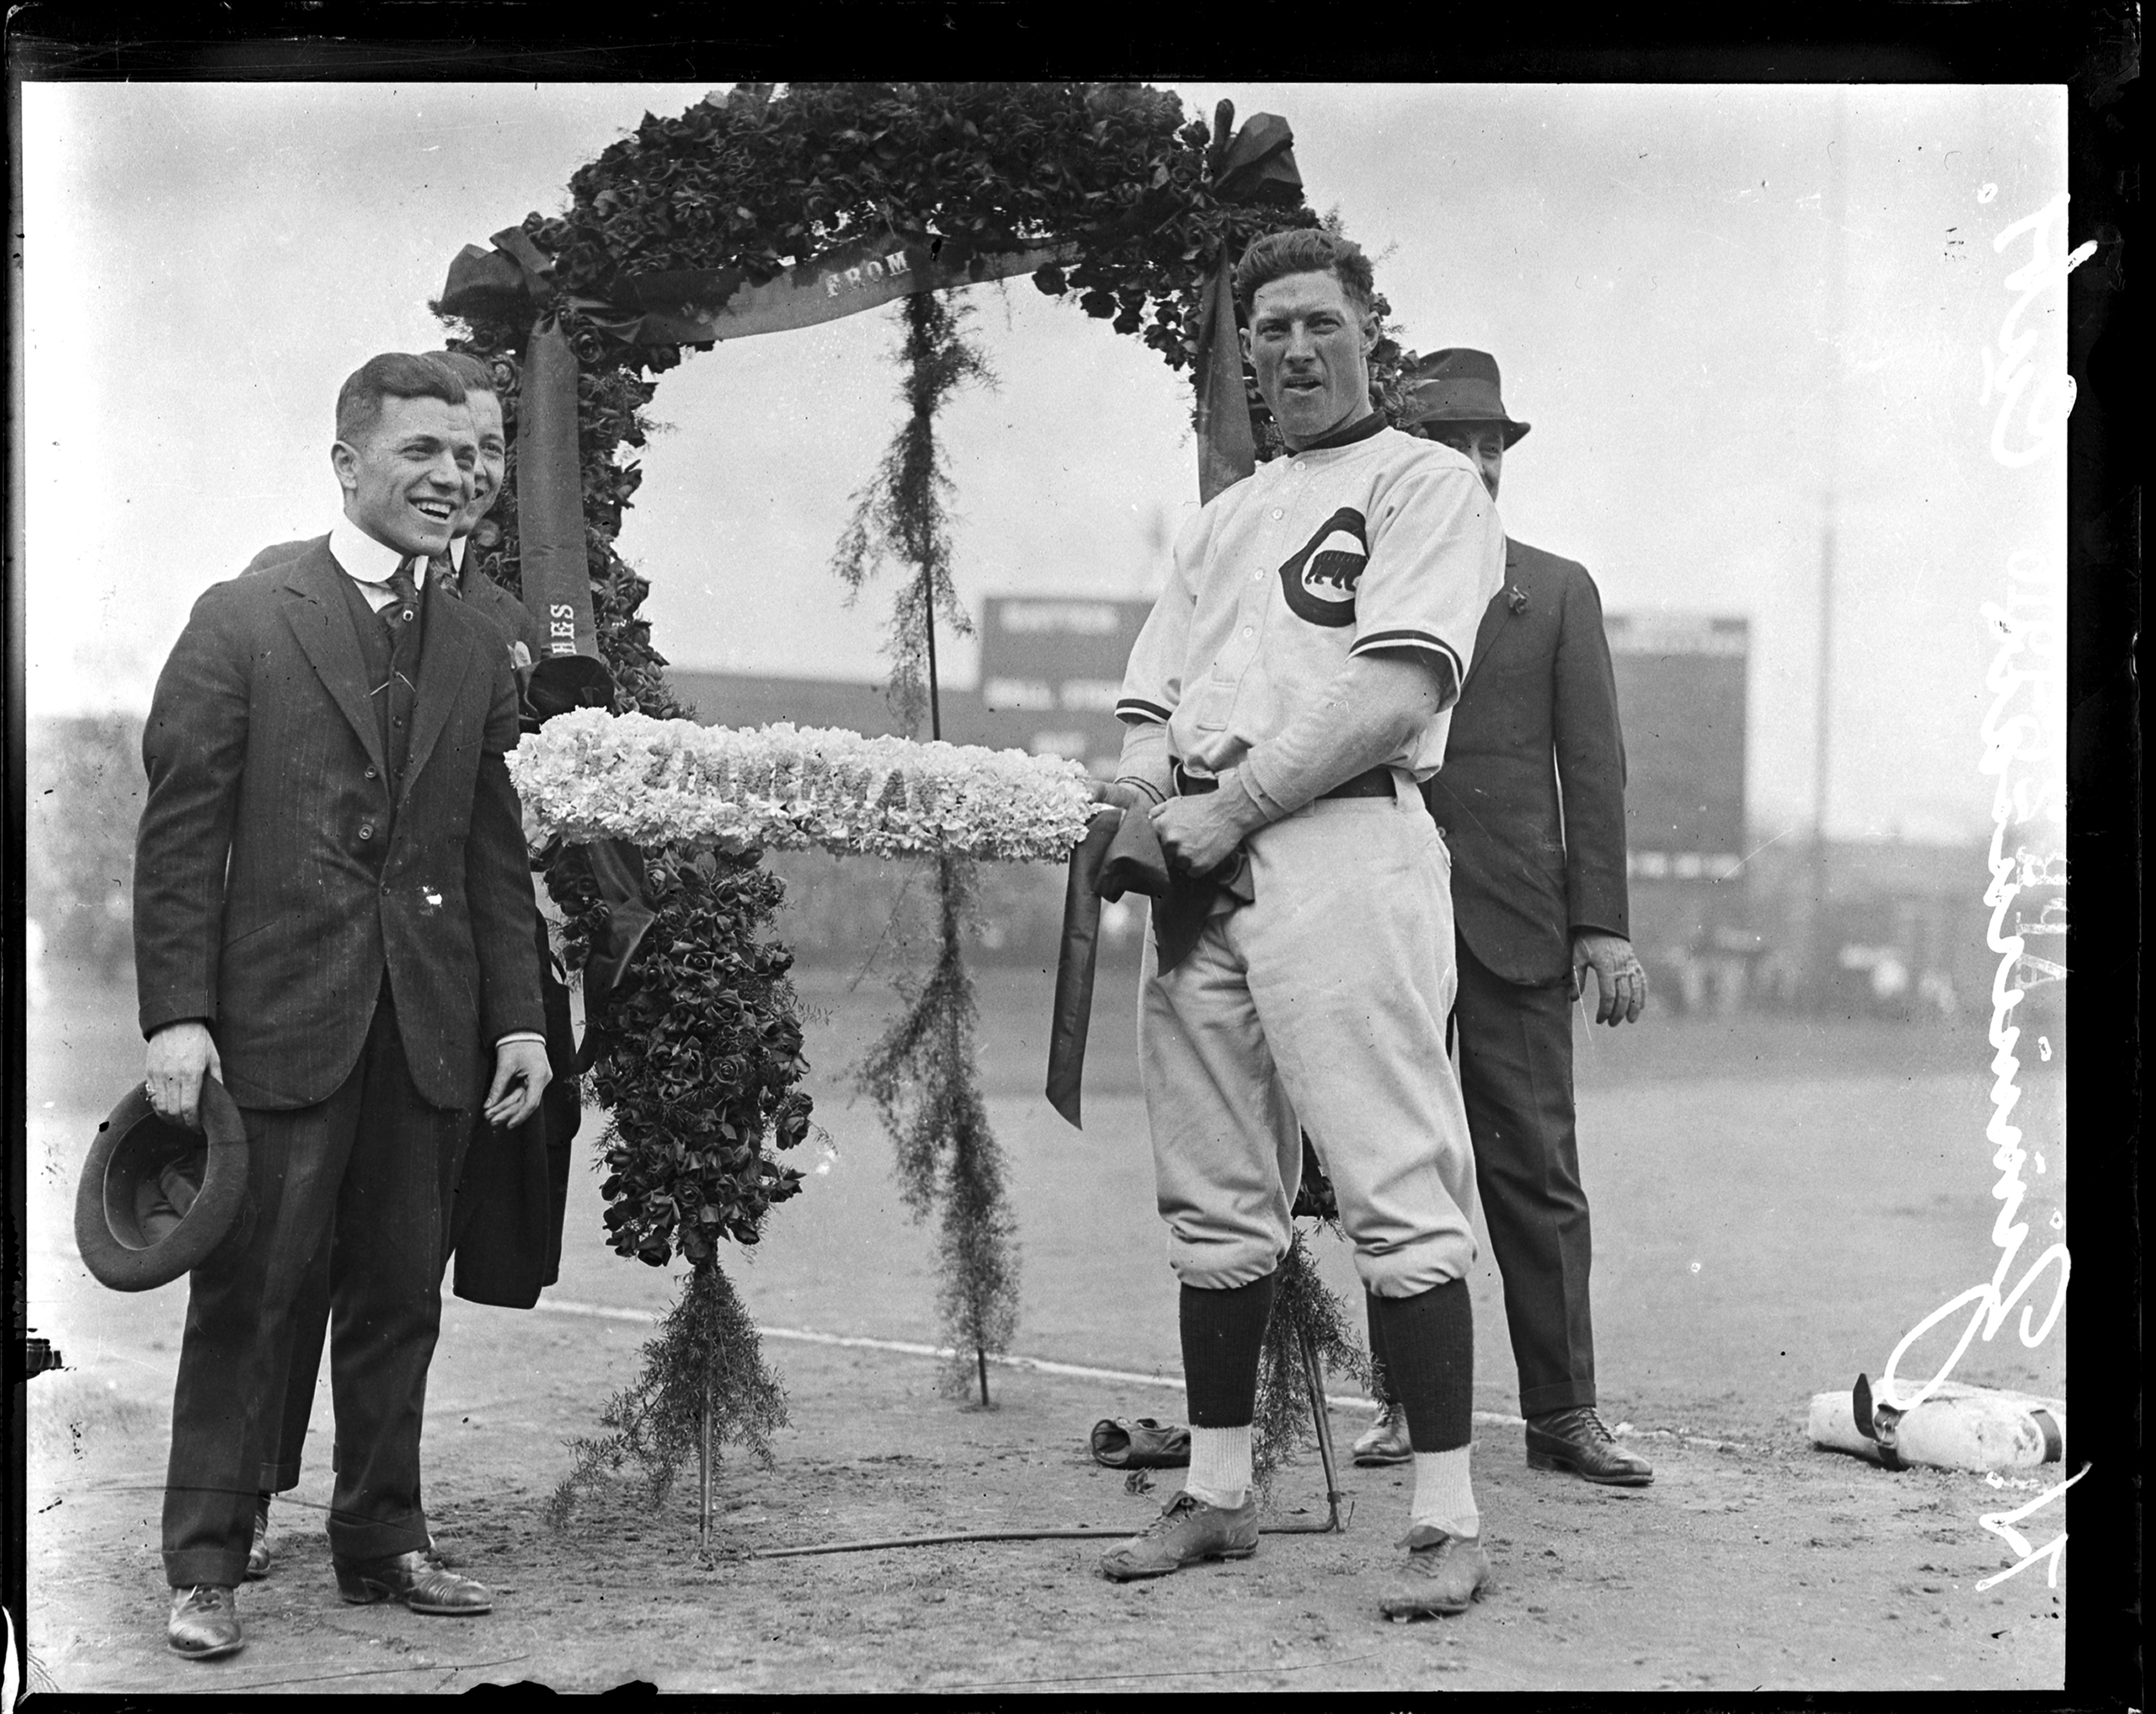 National League's Chicago Cubs baseball player Heinie Zimmerman standing in front of a floral arch at Weeghman Park, Chicago, 1916.